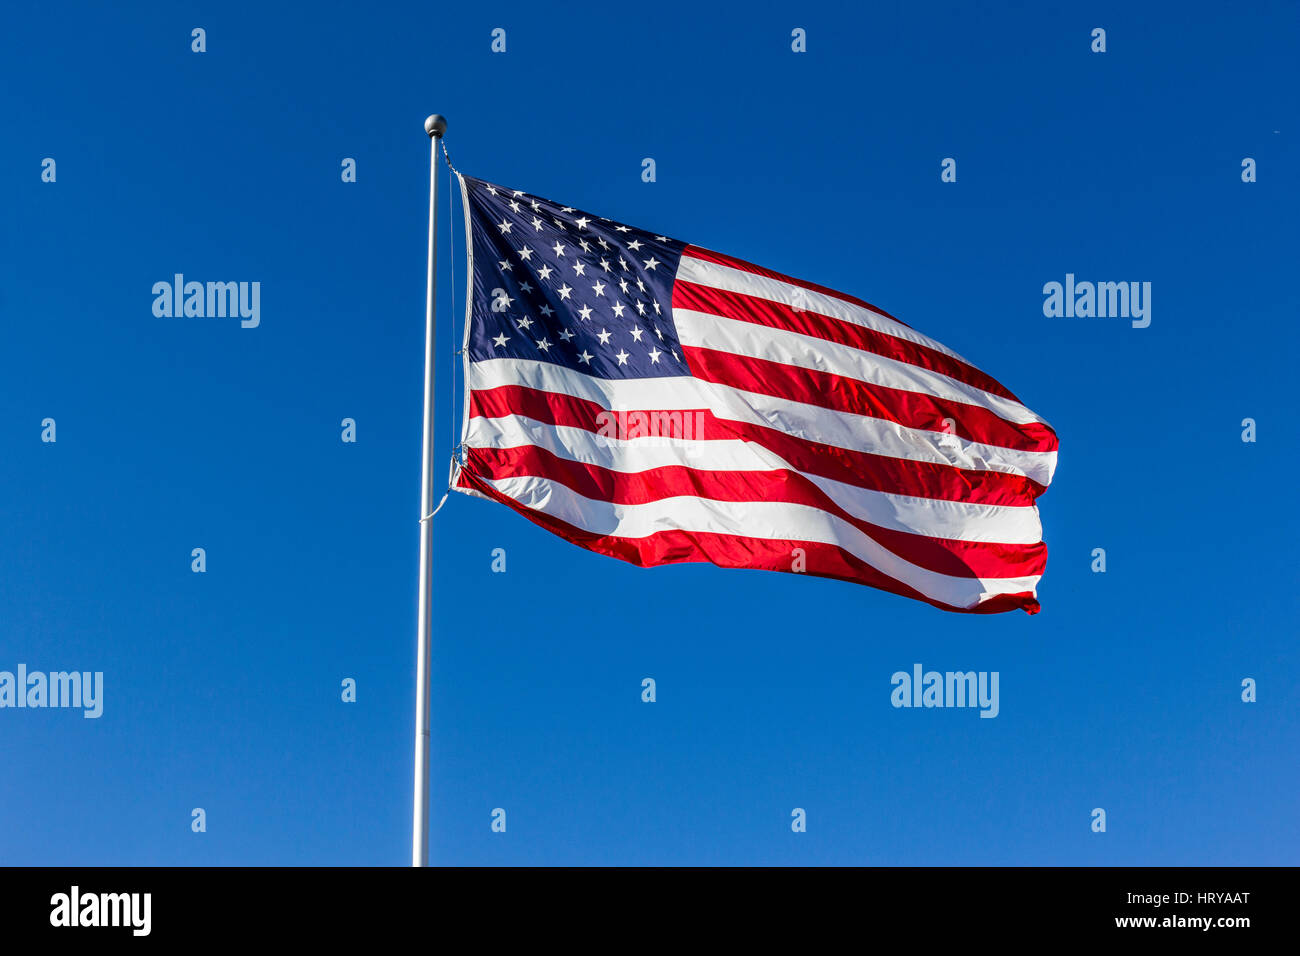 American Flag Waving in the Wind I - Stock Image